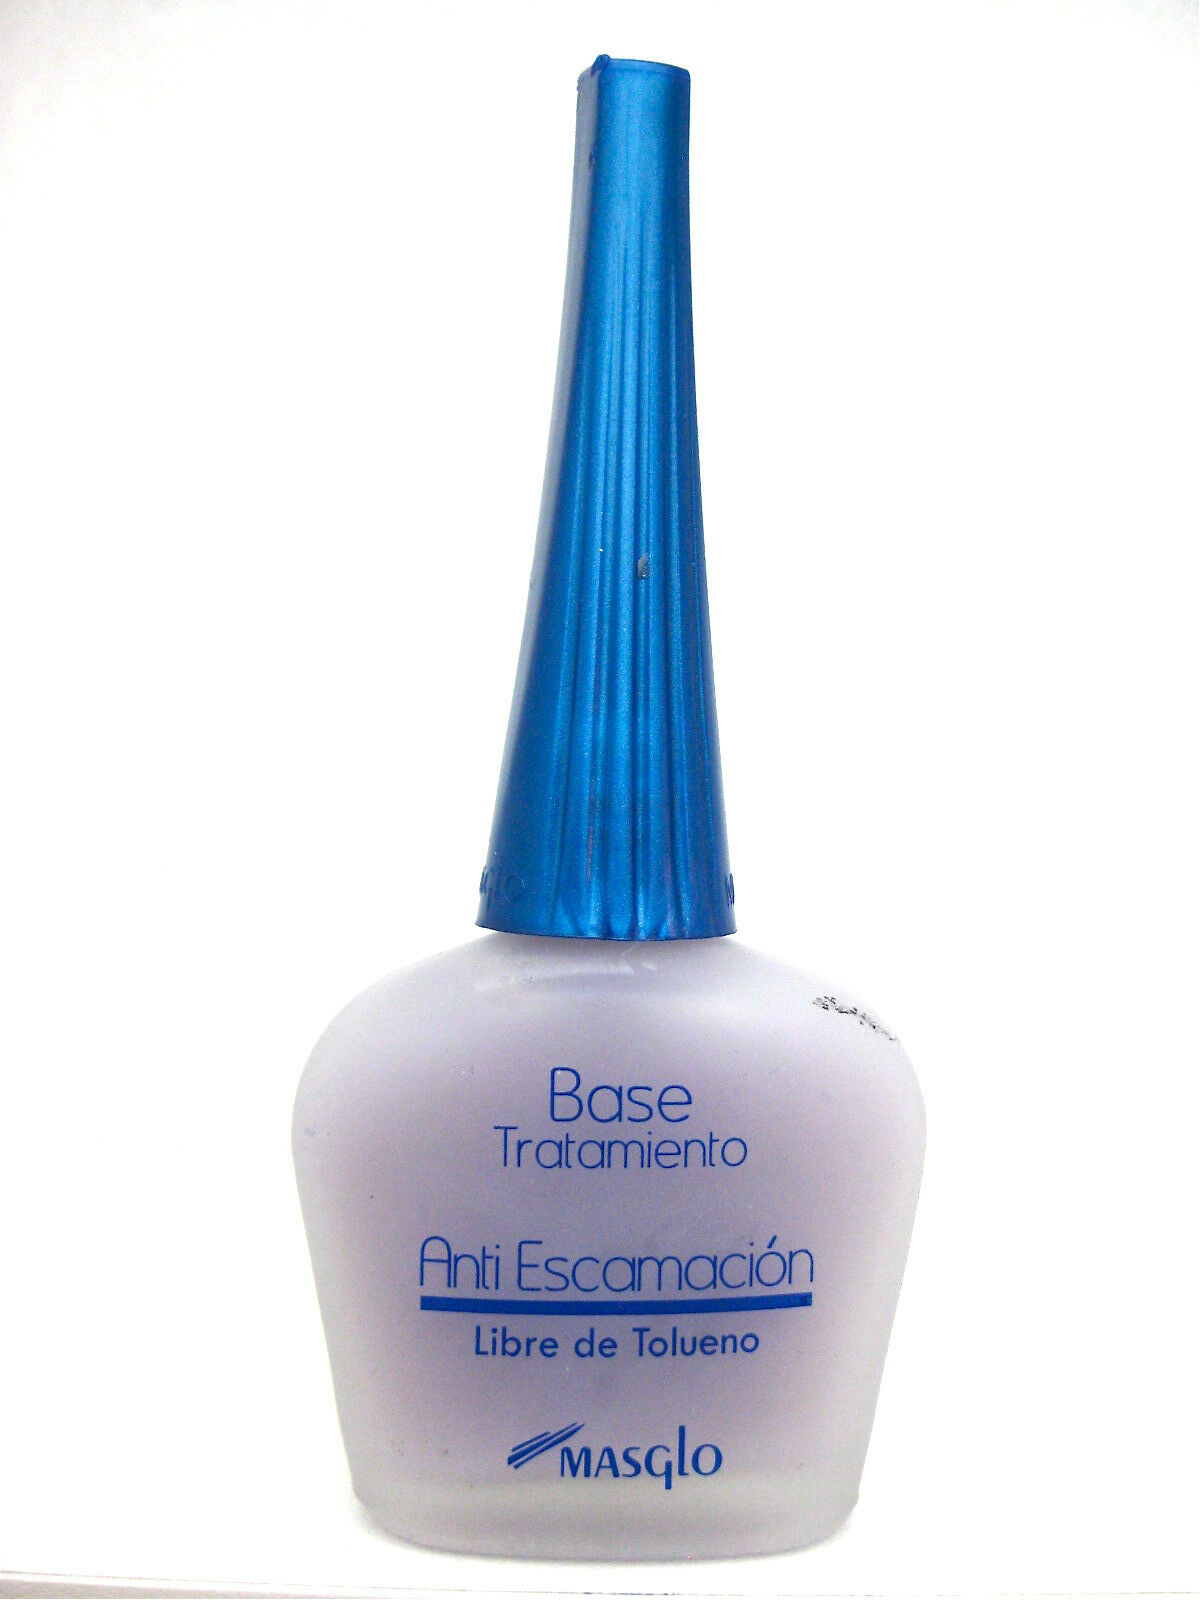 Masglo Base Anti Escamacion Polish Nail Color Esmalte De Uñas Fragile Nails 1 Of 1only 2 Available